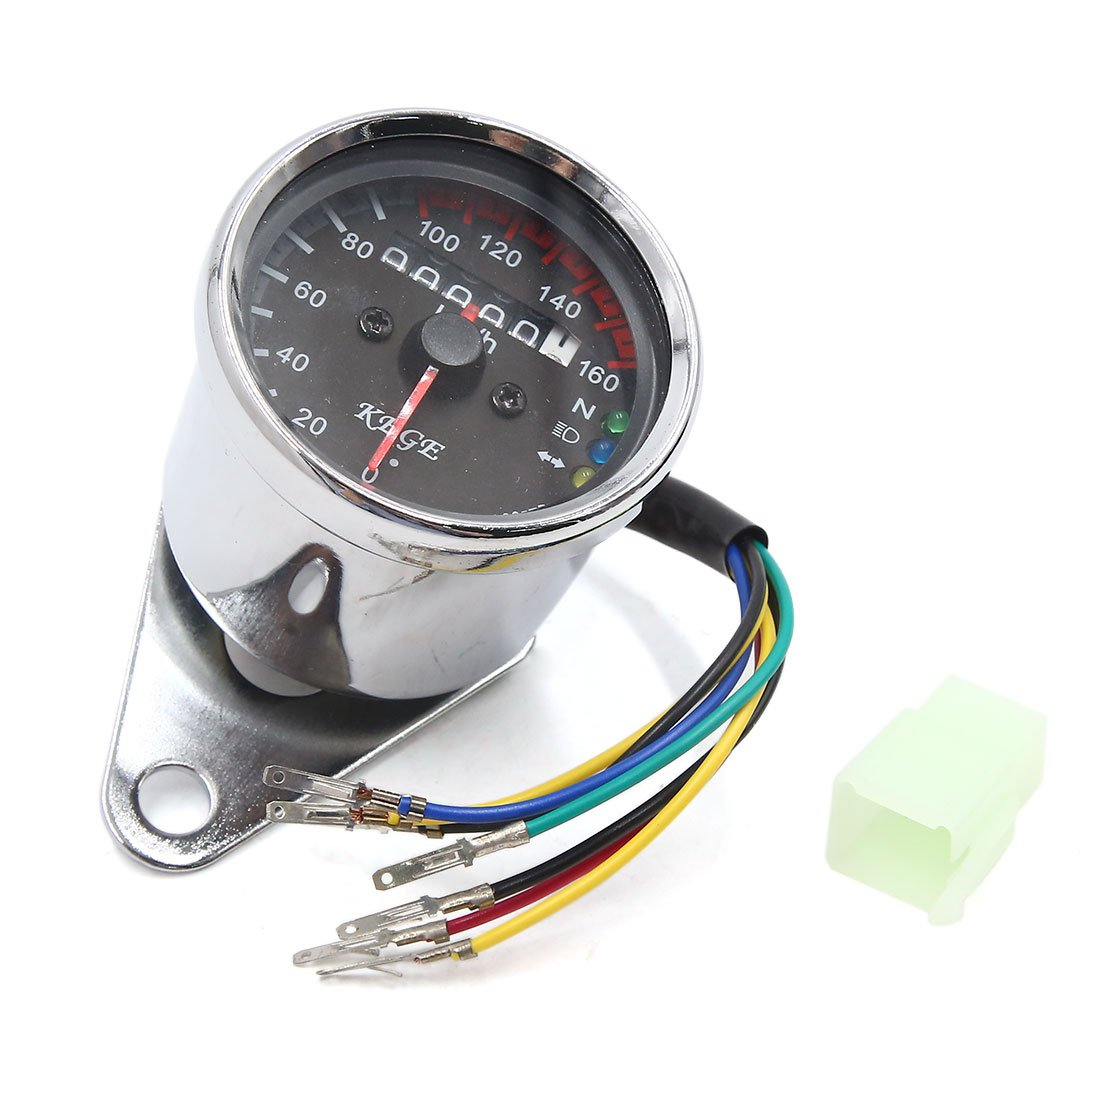 uxcell Motorcycle LED Backlight Digital Odometer Speedometer Gauge Silver Tone